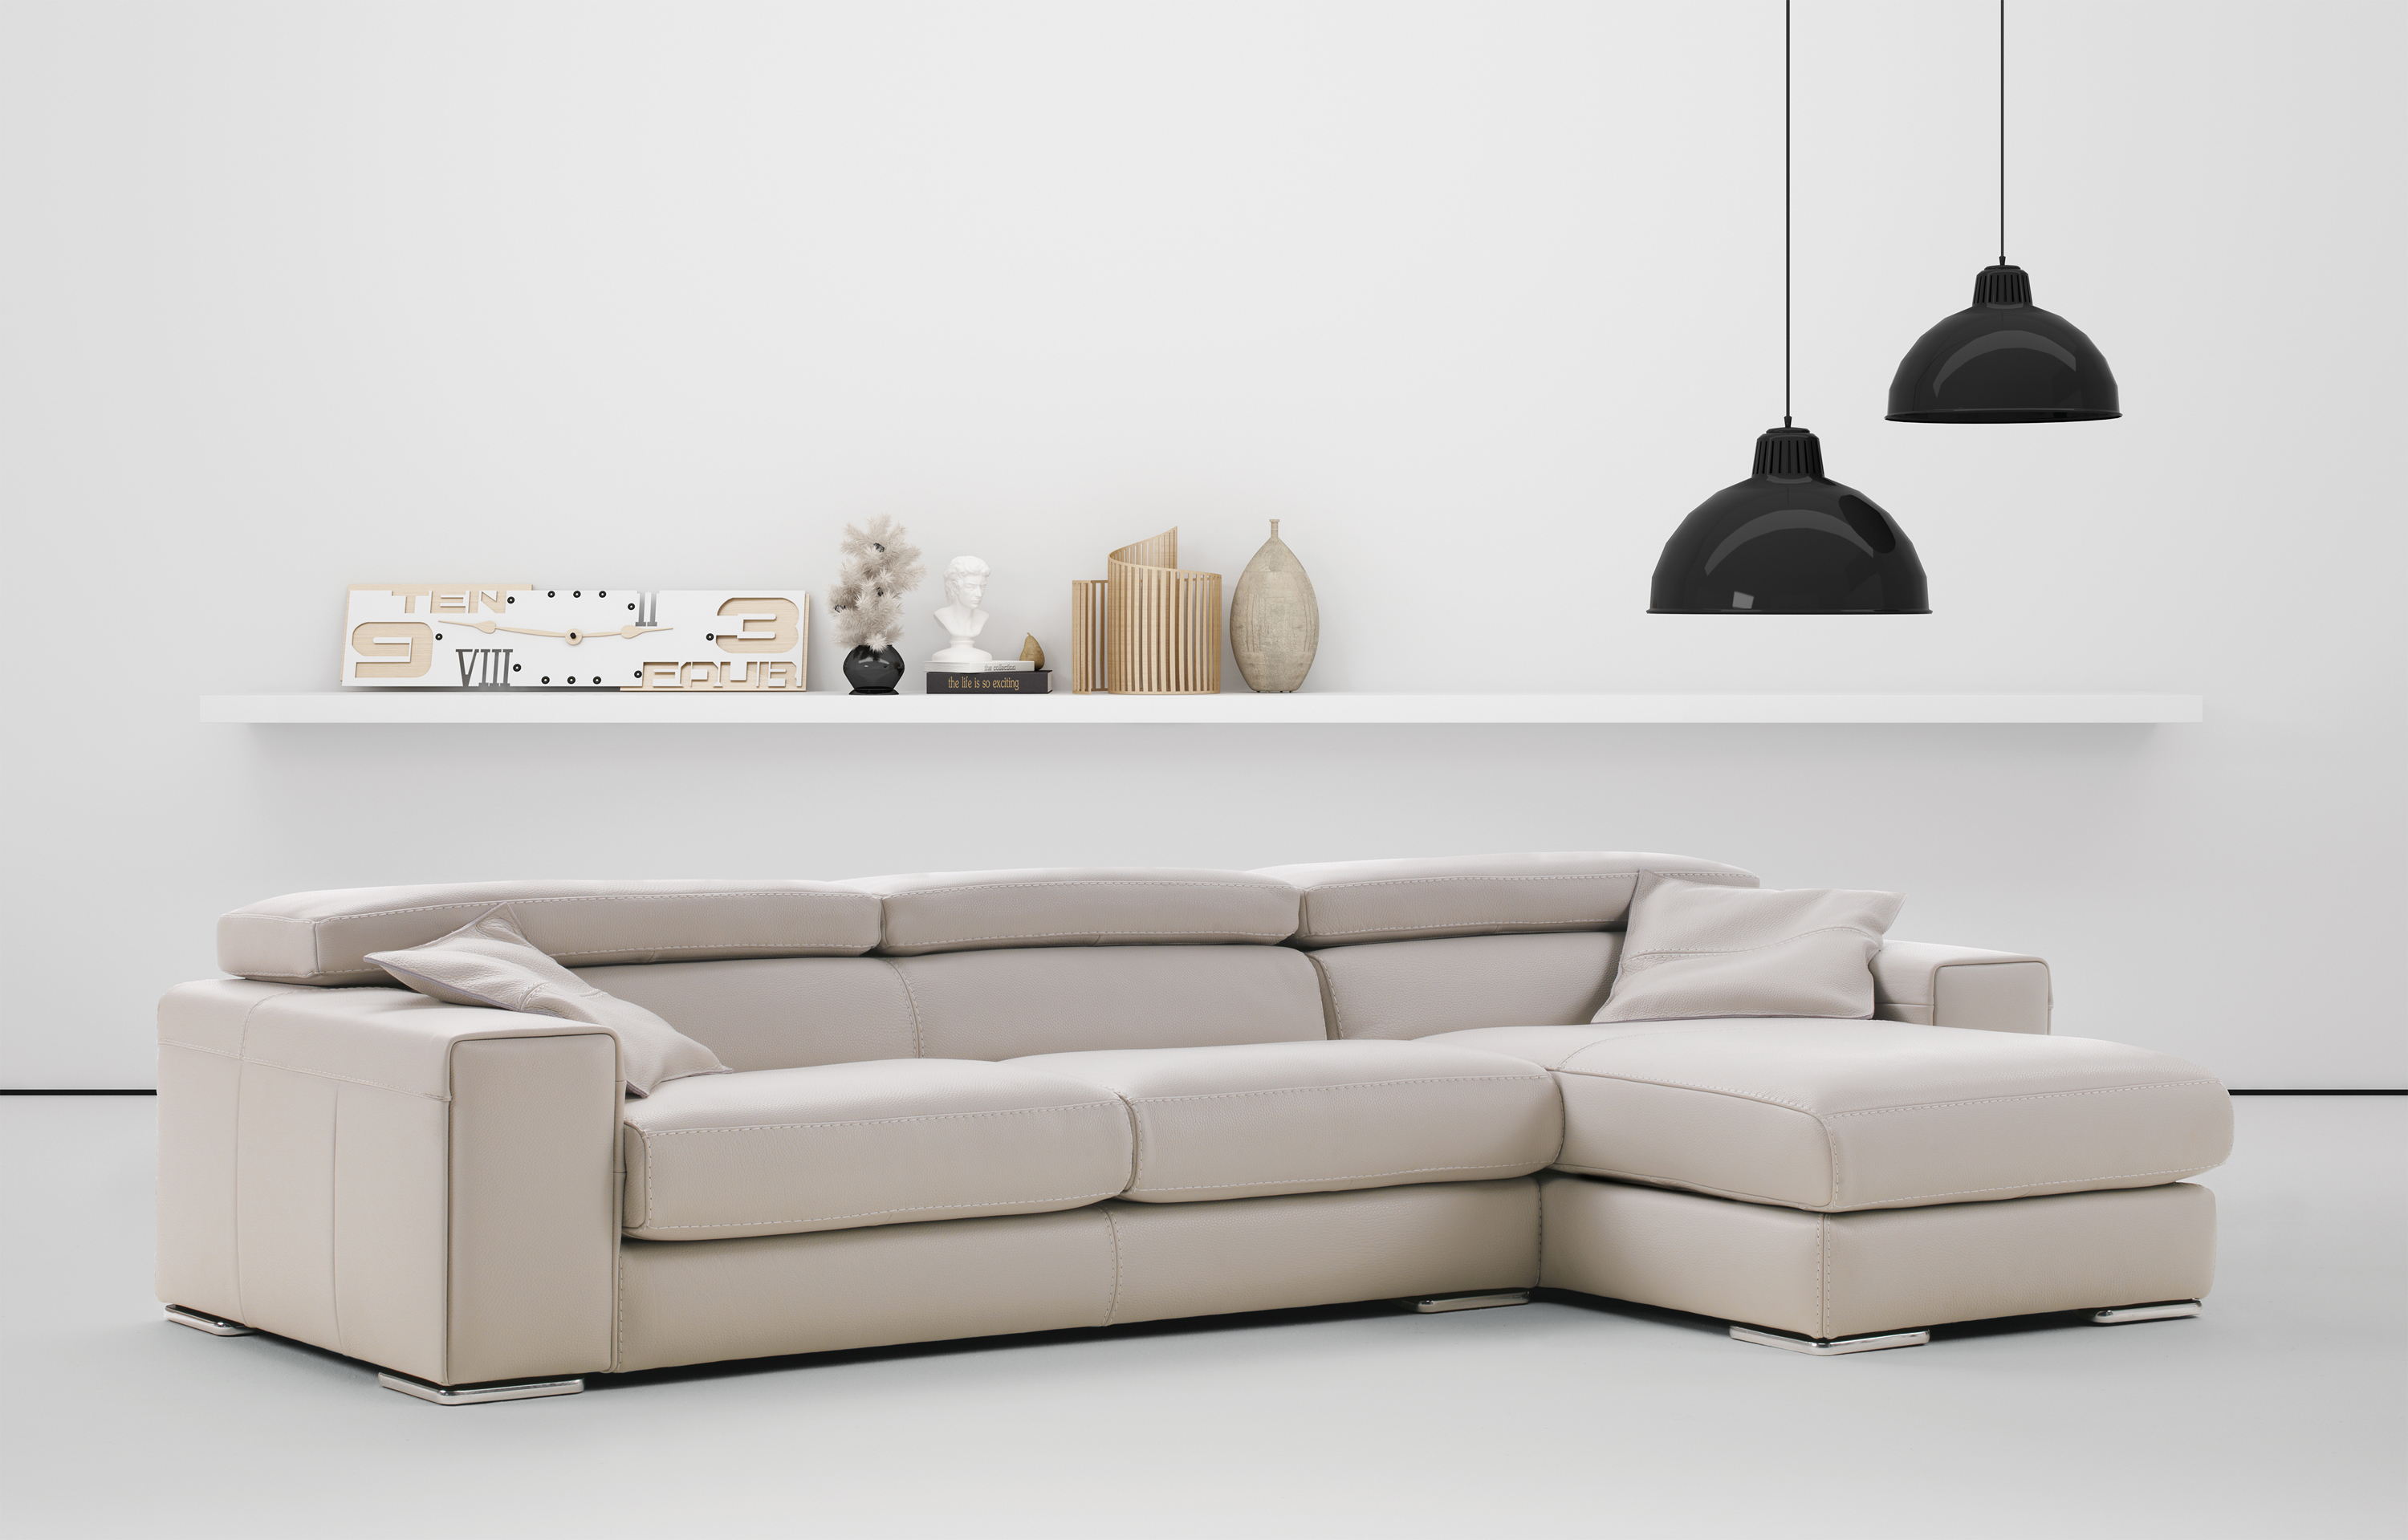 Sectional sofas baton rouge refil sofa American home furniture in baton rouge